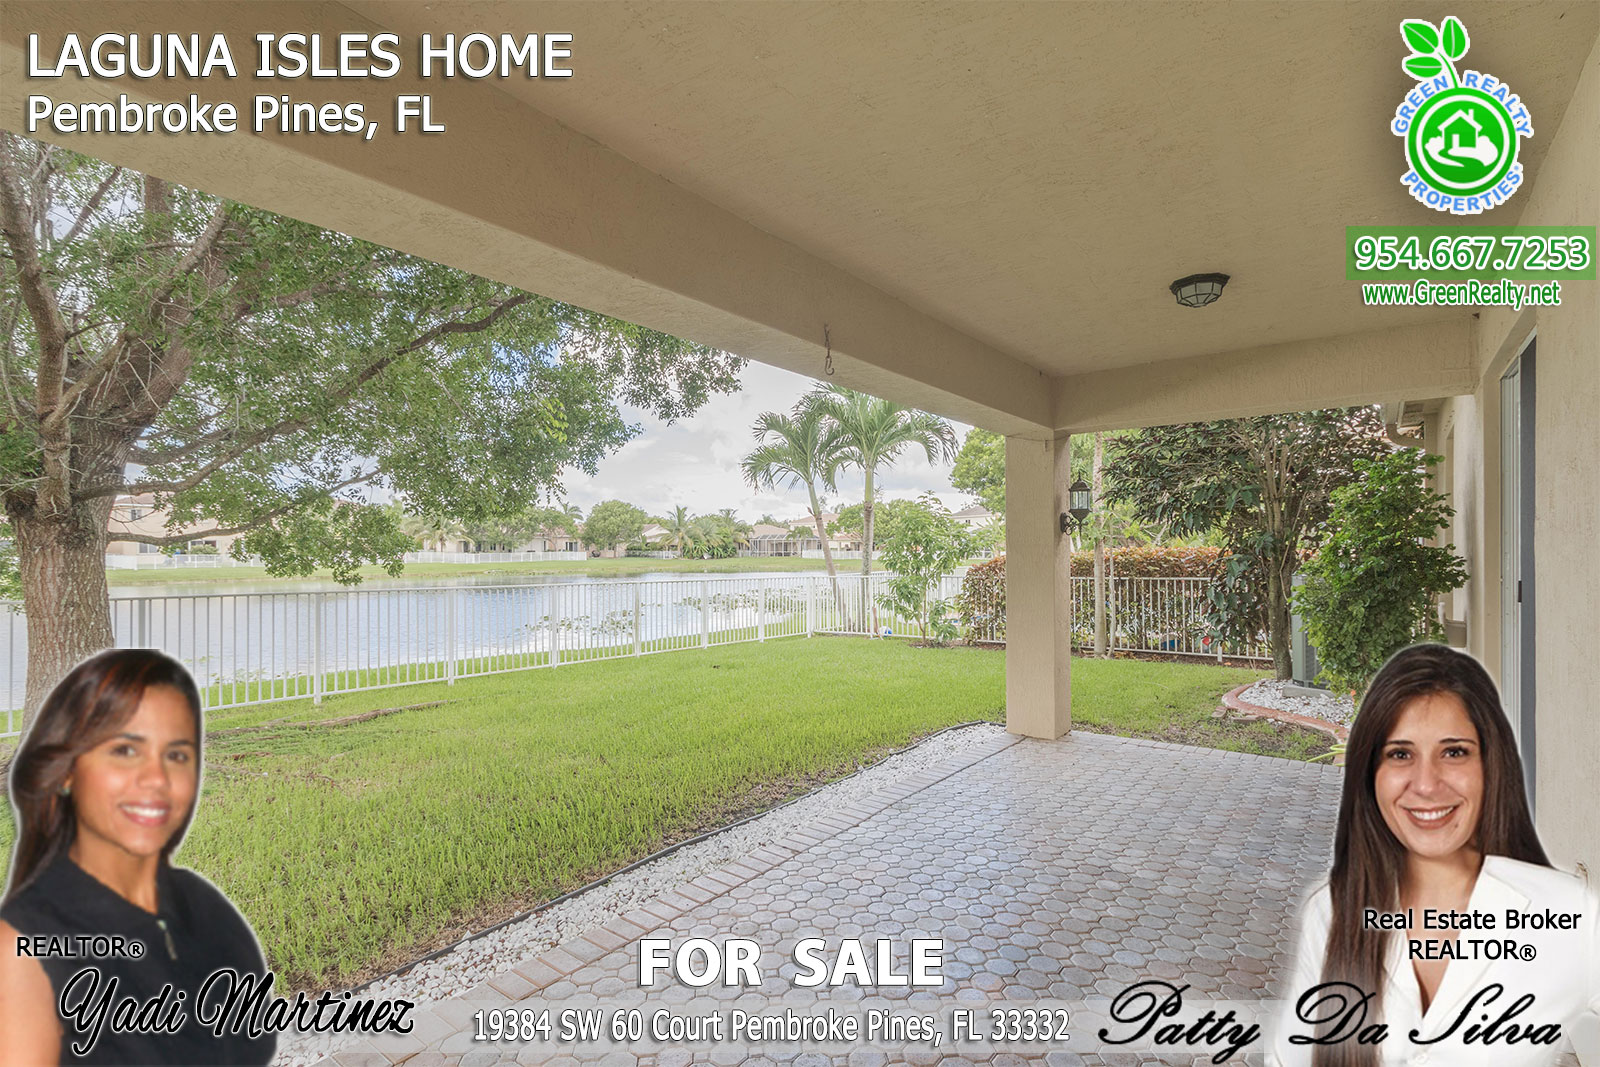 Pembroke-pines-laguna-isles-home-for-sale-by-green-realty-properties-22